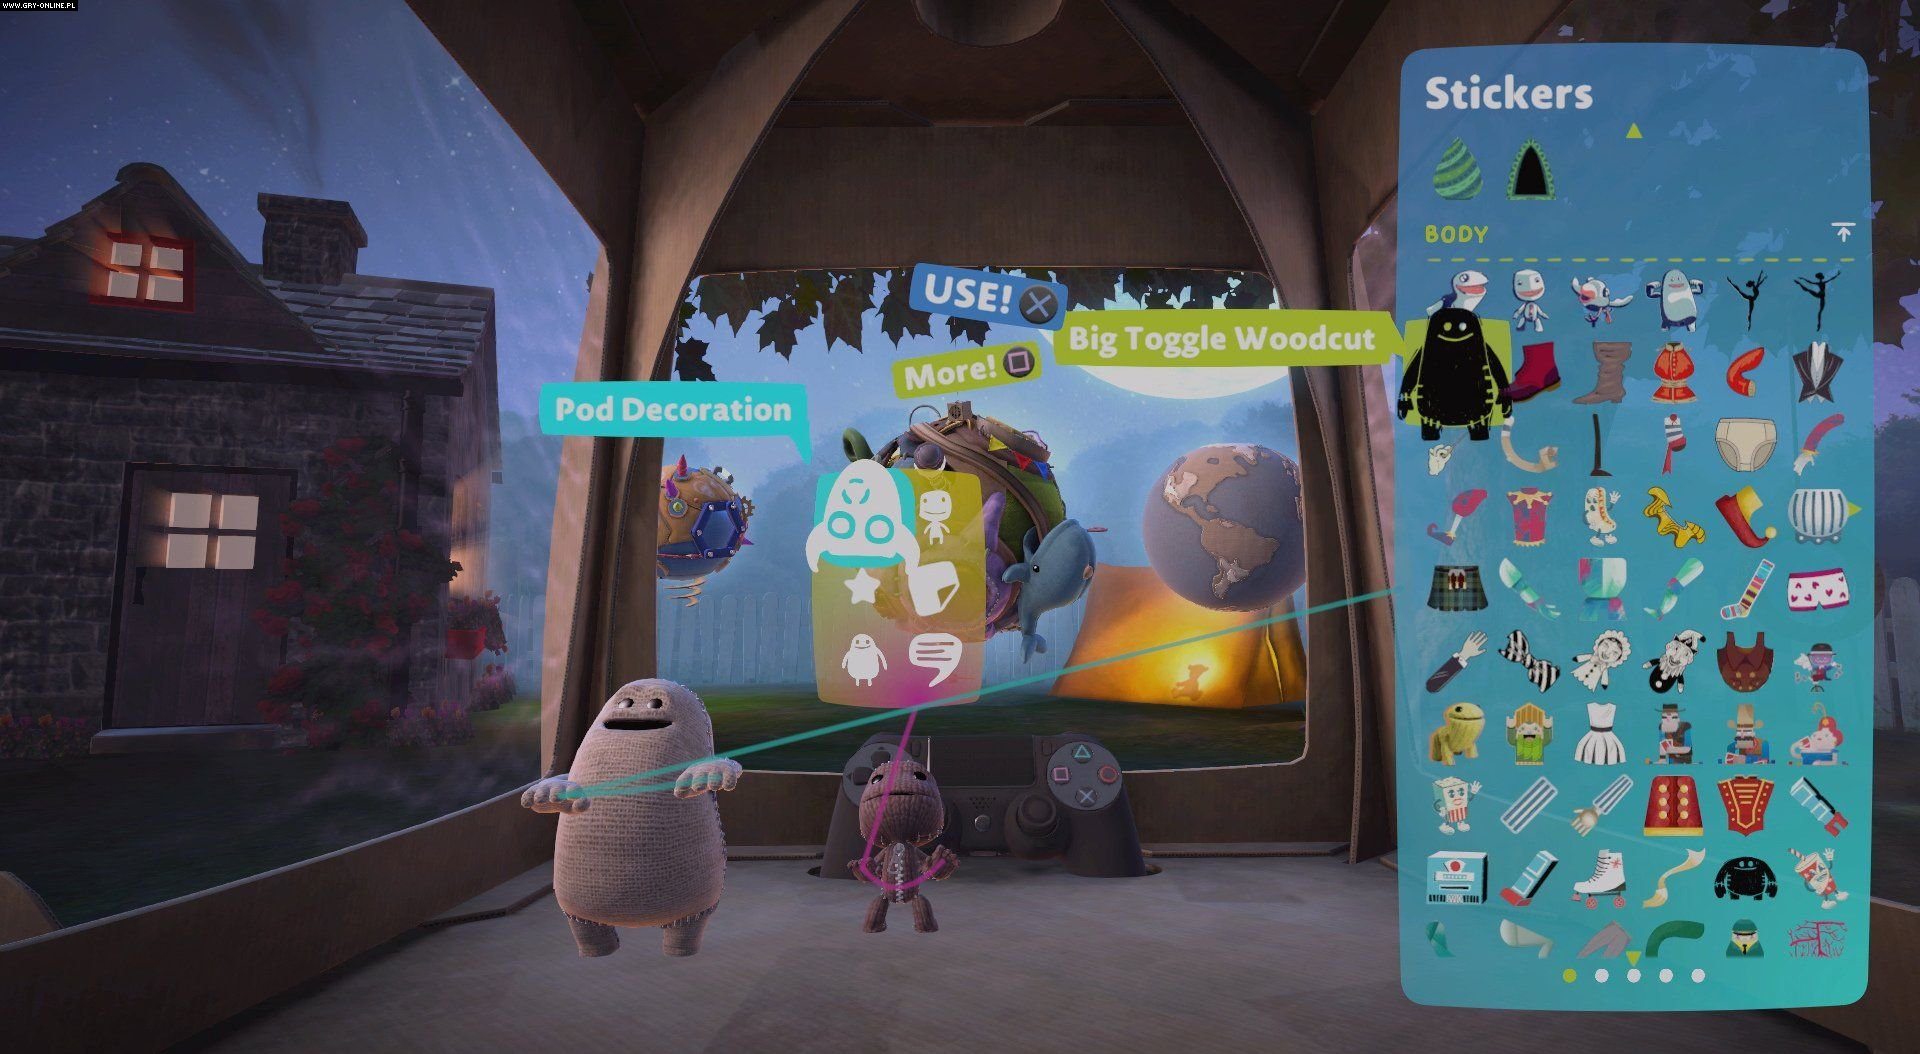 LittleBigPlanet 3 PS3, PS4 Gry Screen 1/37, Sumo Digital, Sony Interactive Entertainment